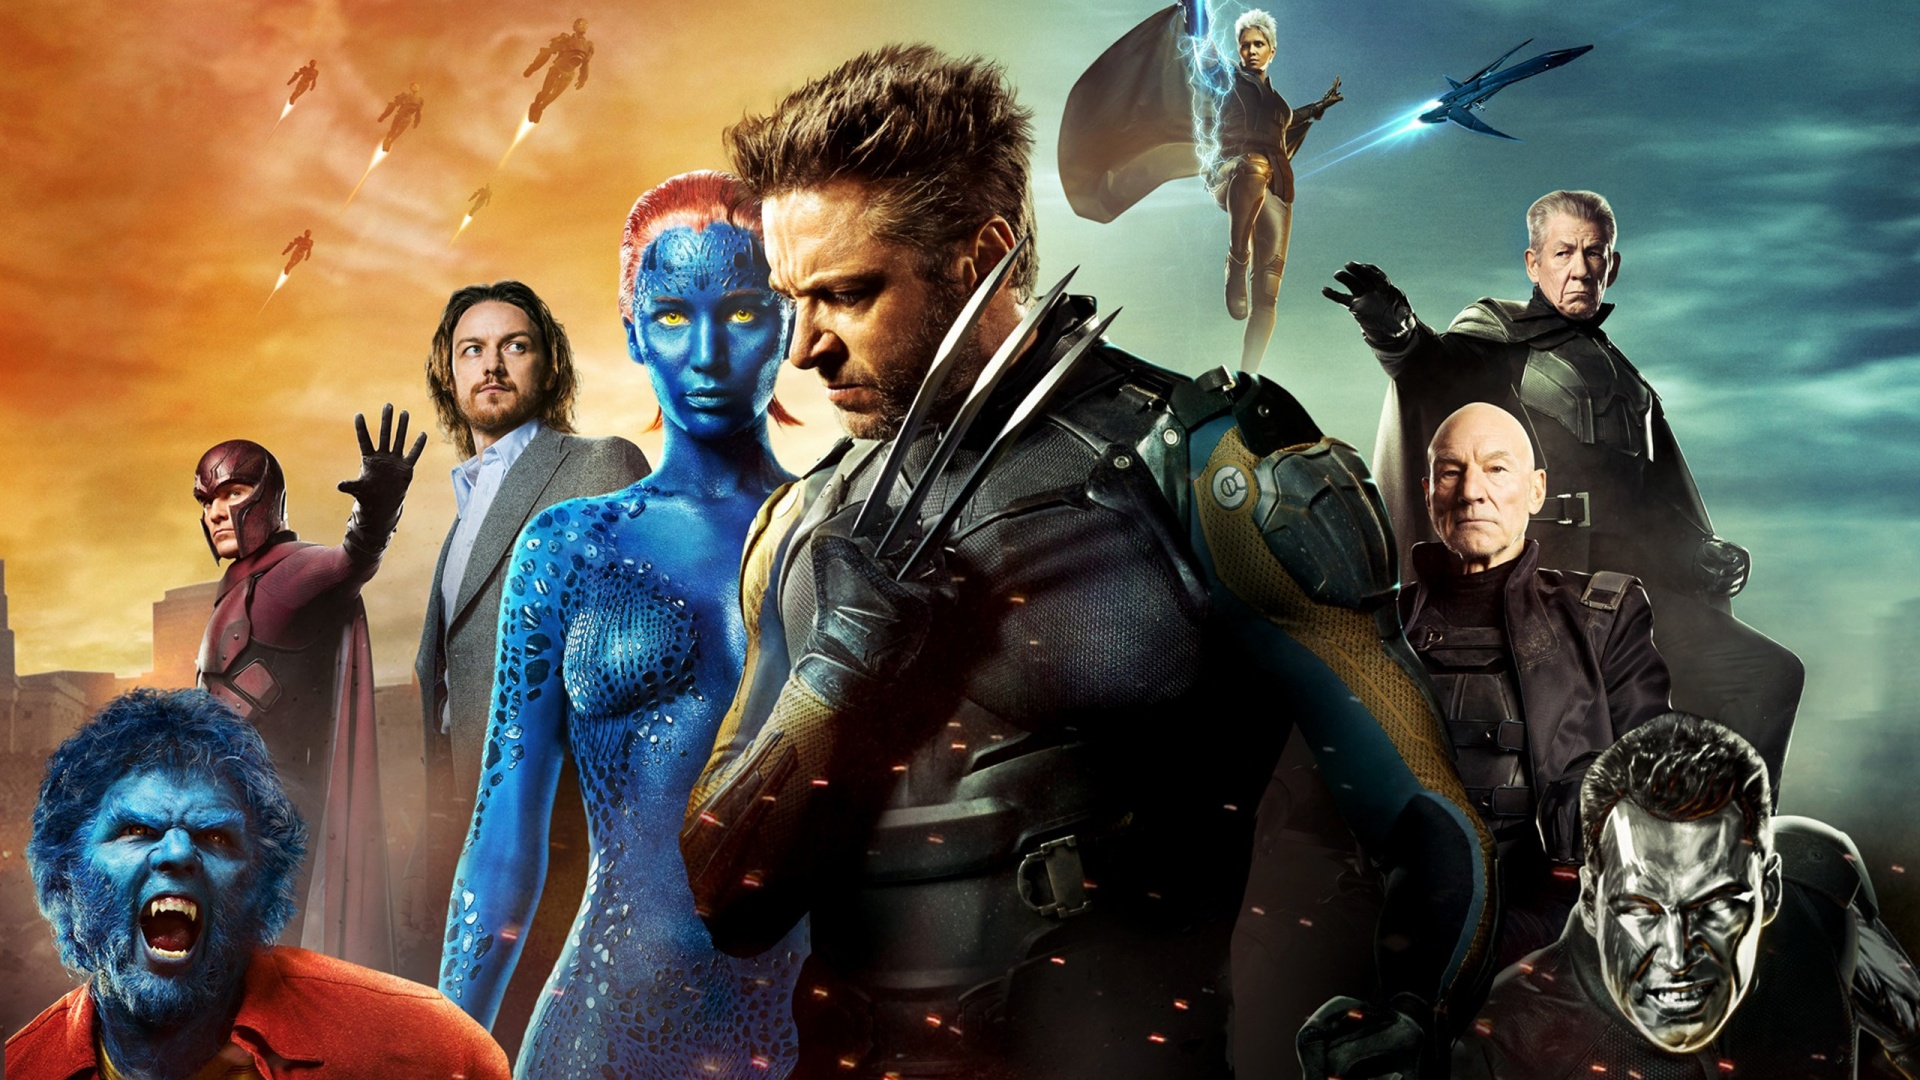 X Men Days Of Future Past Poster Wallpapers